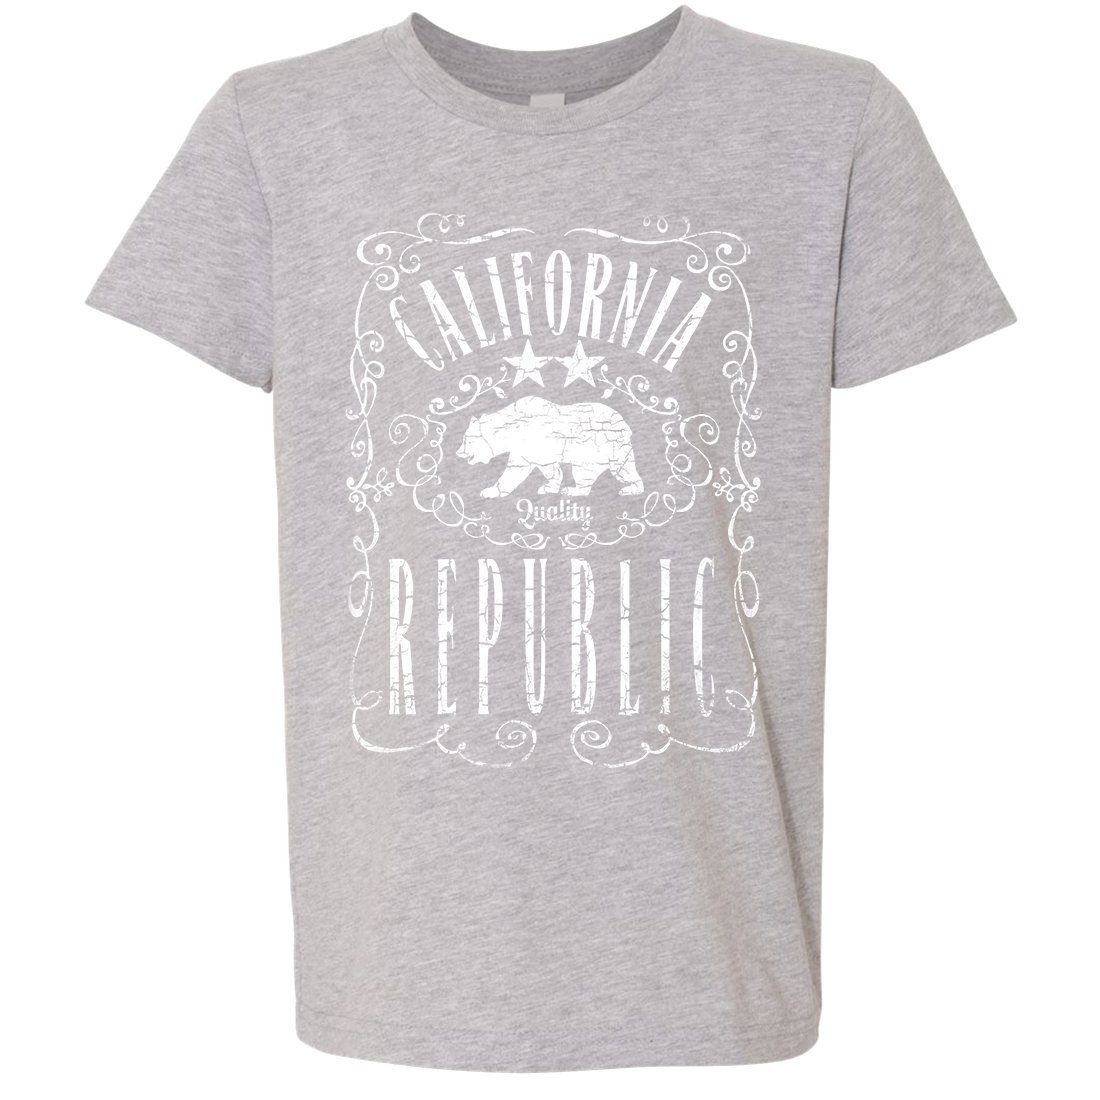 California Republic JD Whiskey Asst Colors Youth T-Shirt//tee